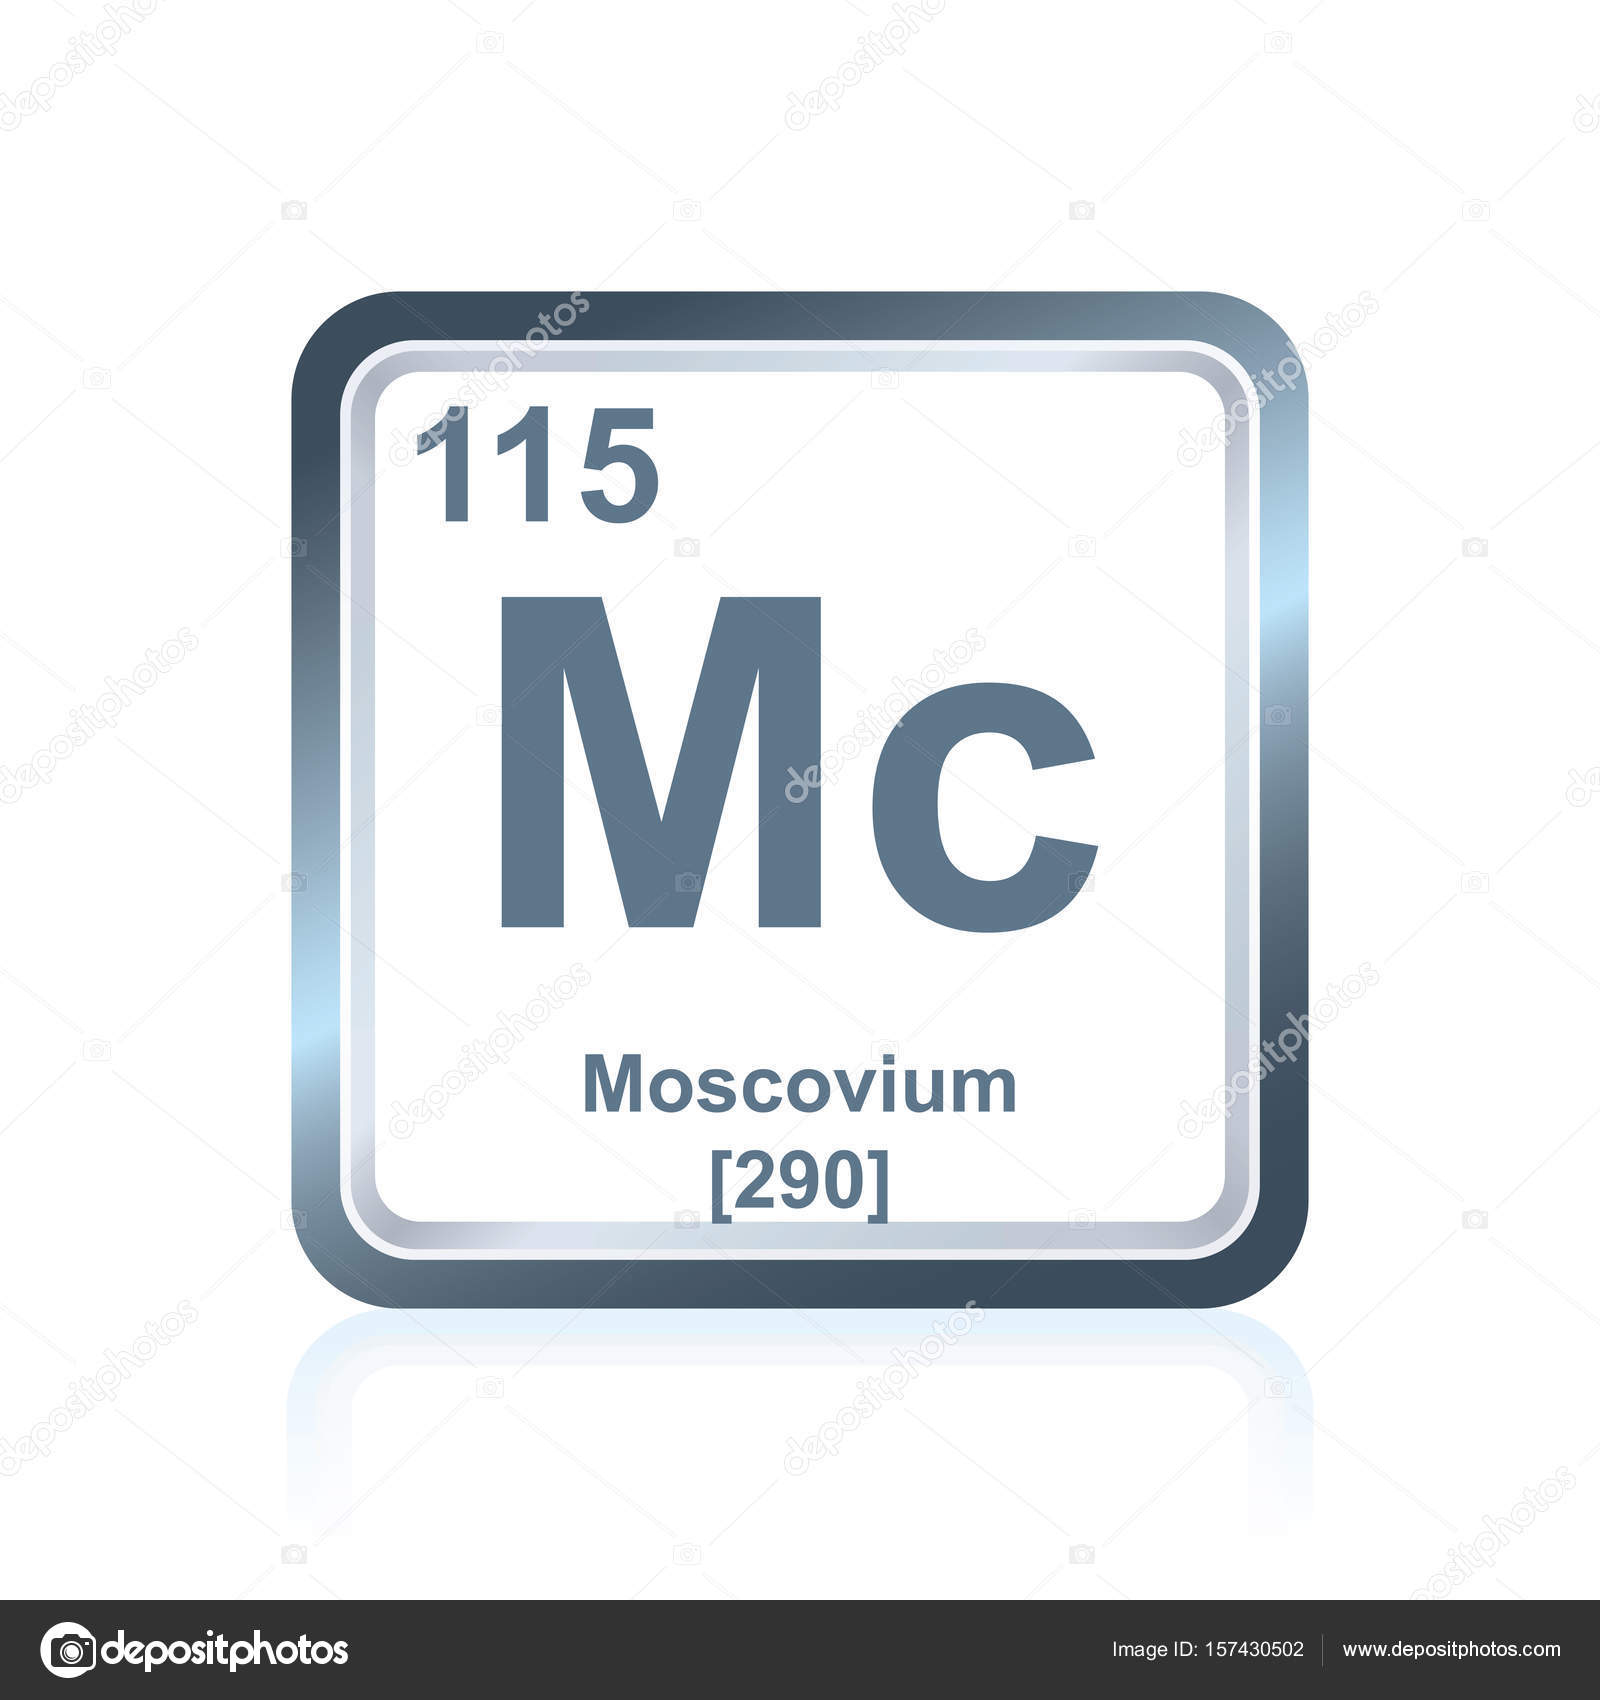 Chemical element moscovium from the periodic table stock photo symbol of chemical element moscovium as seen on the periodic table of the elements including atomic number and atomic weight photo by noedelhap urtaz Images